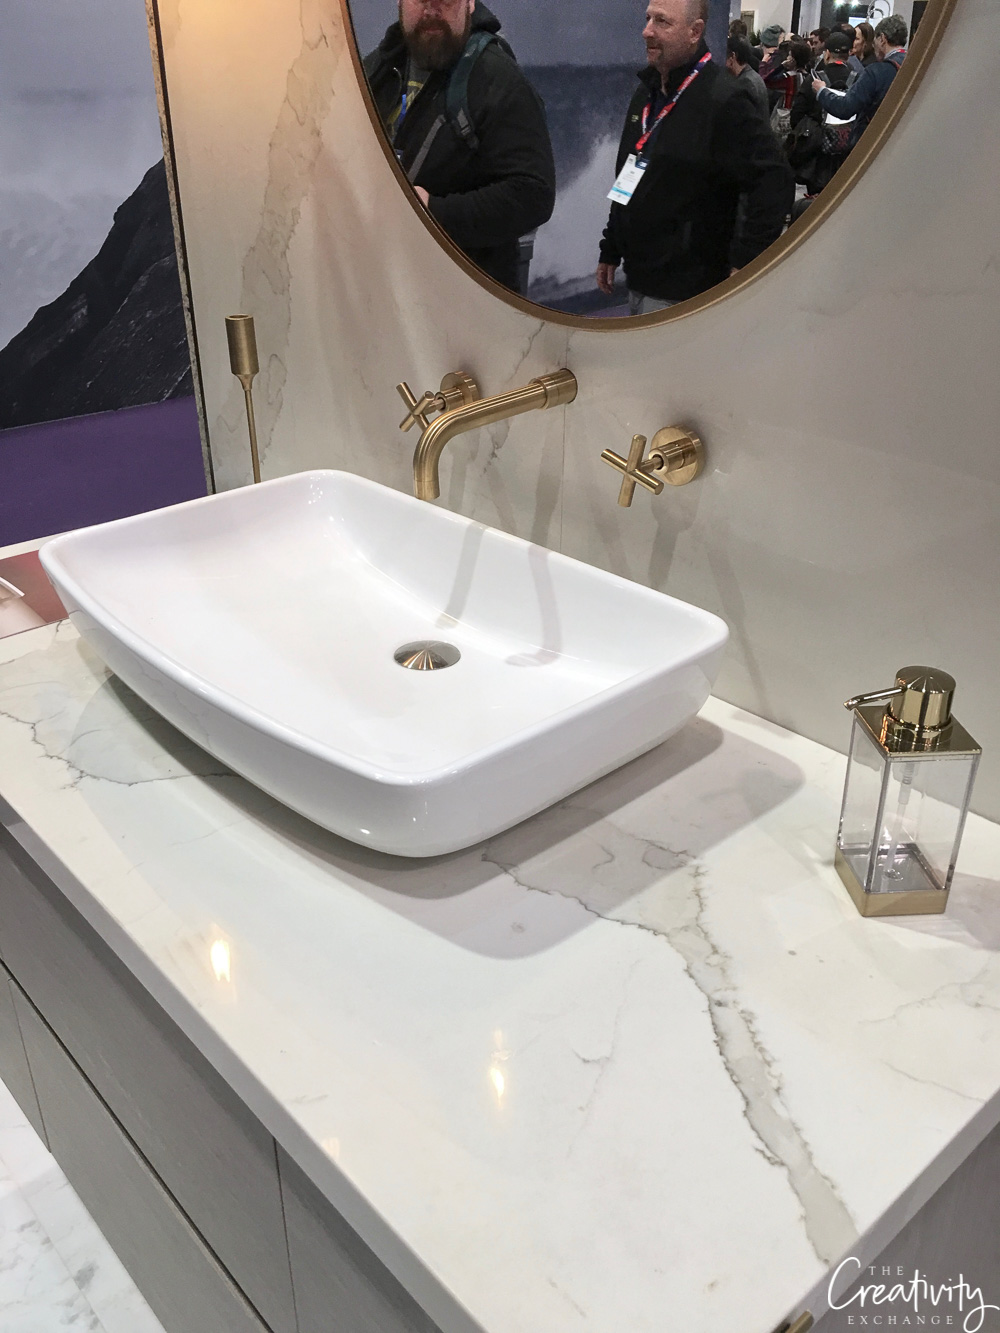 2019 Kitchen And Bath Industry Show In Las Vegas In 2020 Kitchen And Bath Kitchen And Bath Design Best Kitchen Designs